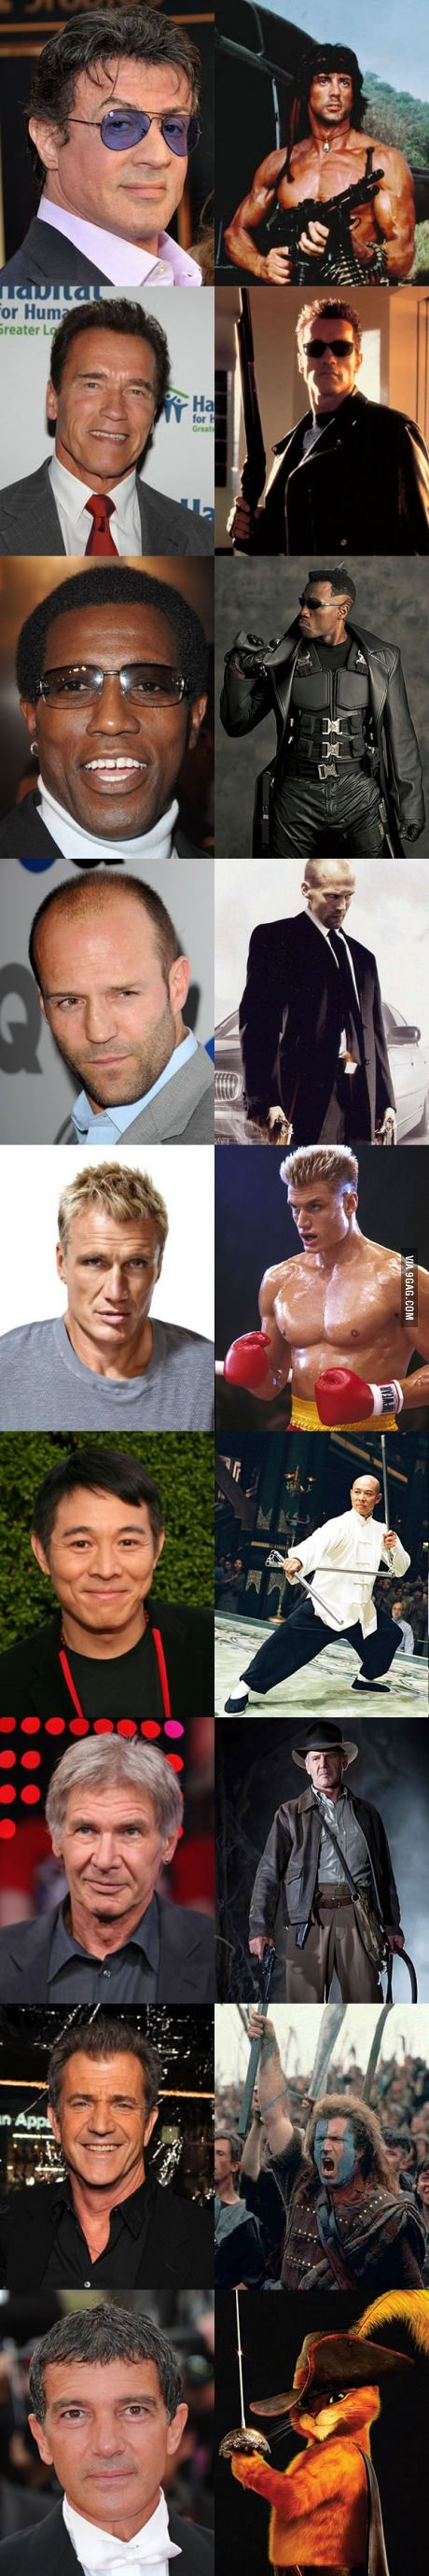 the expendables cast and their past characters